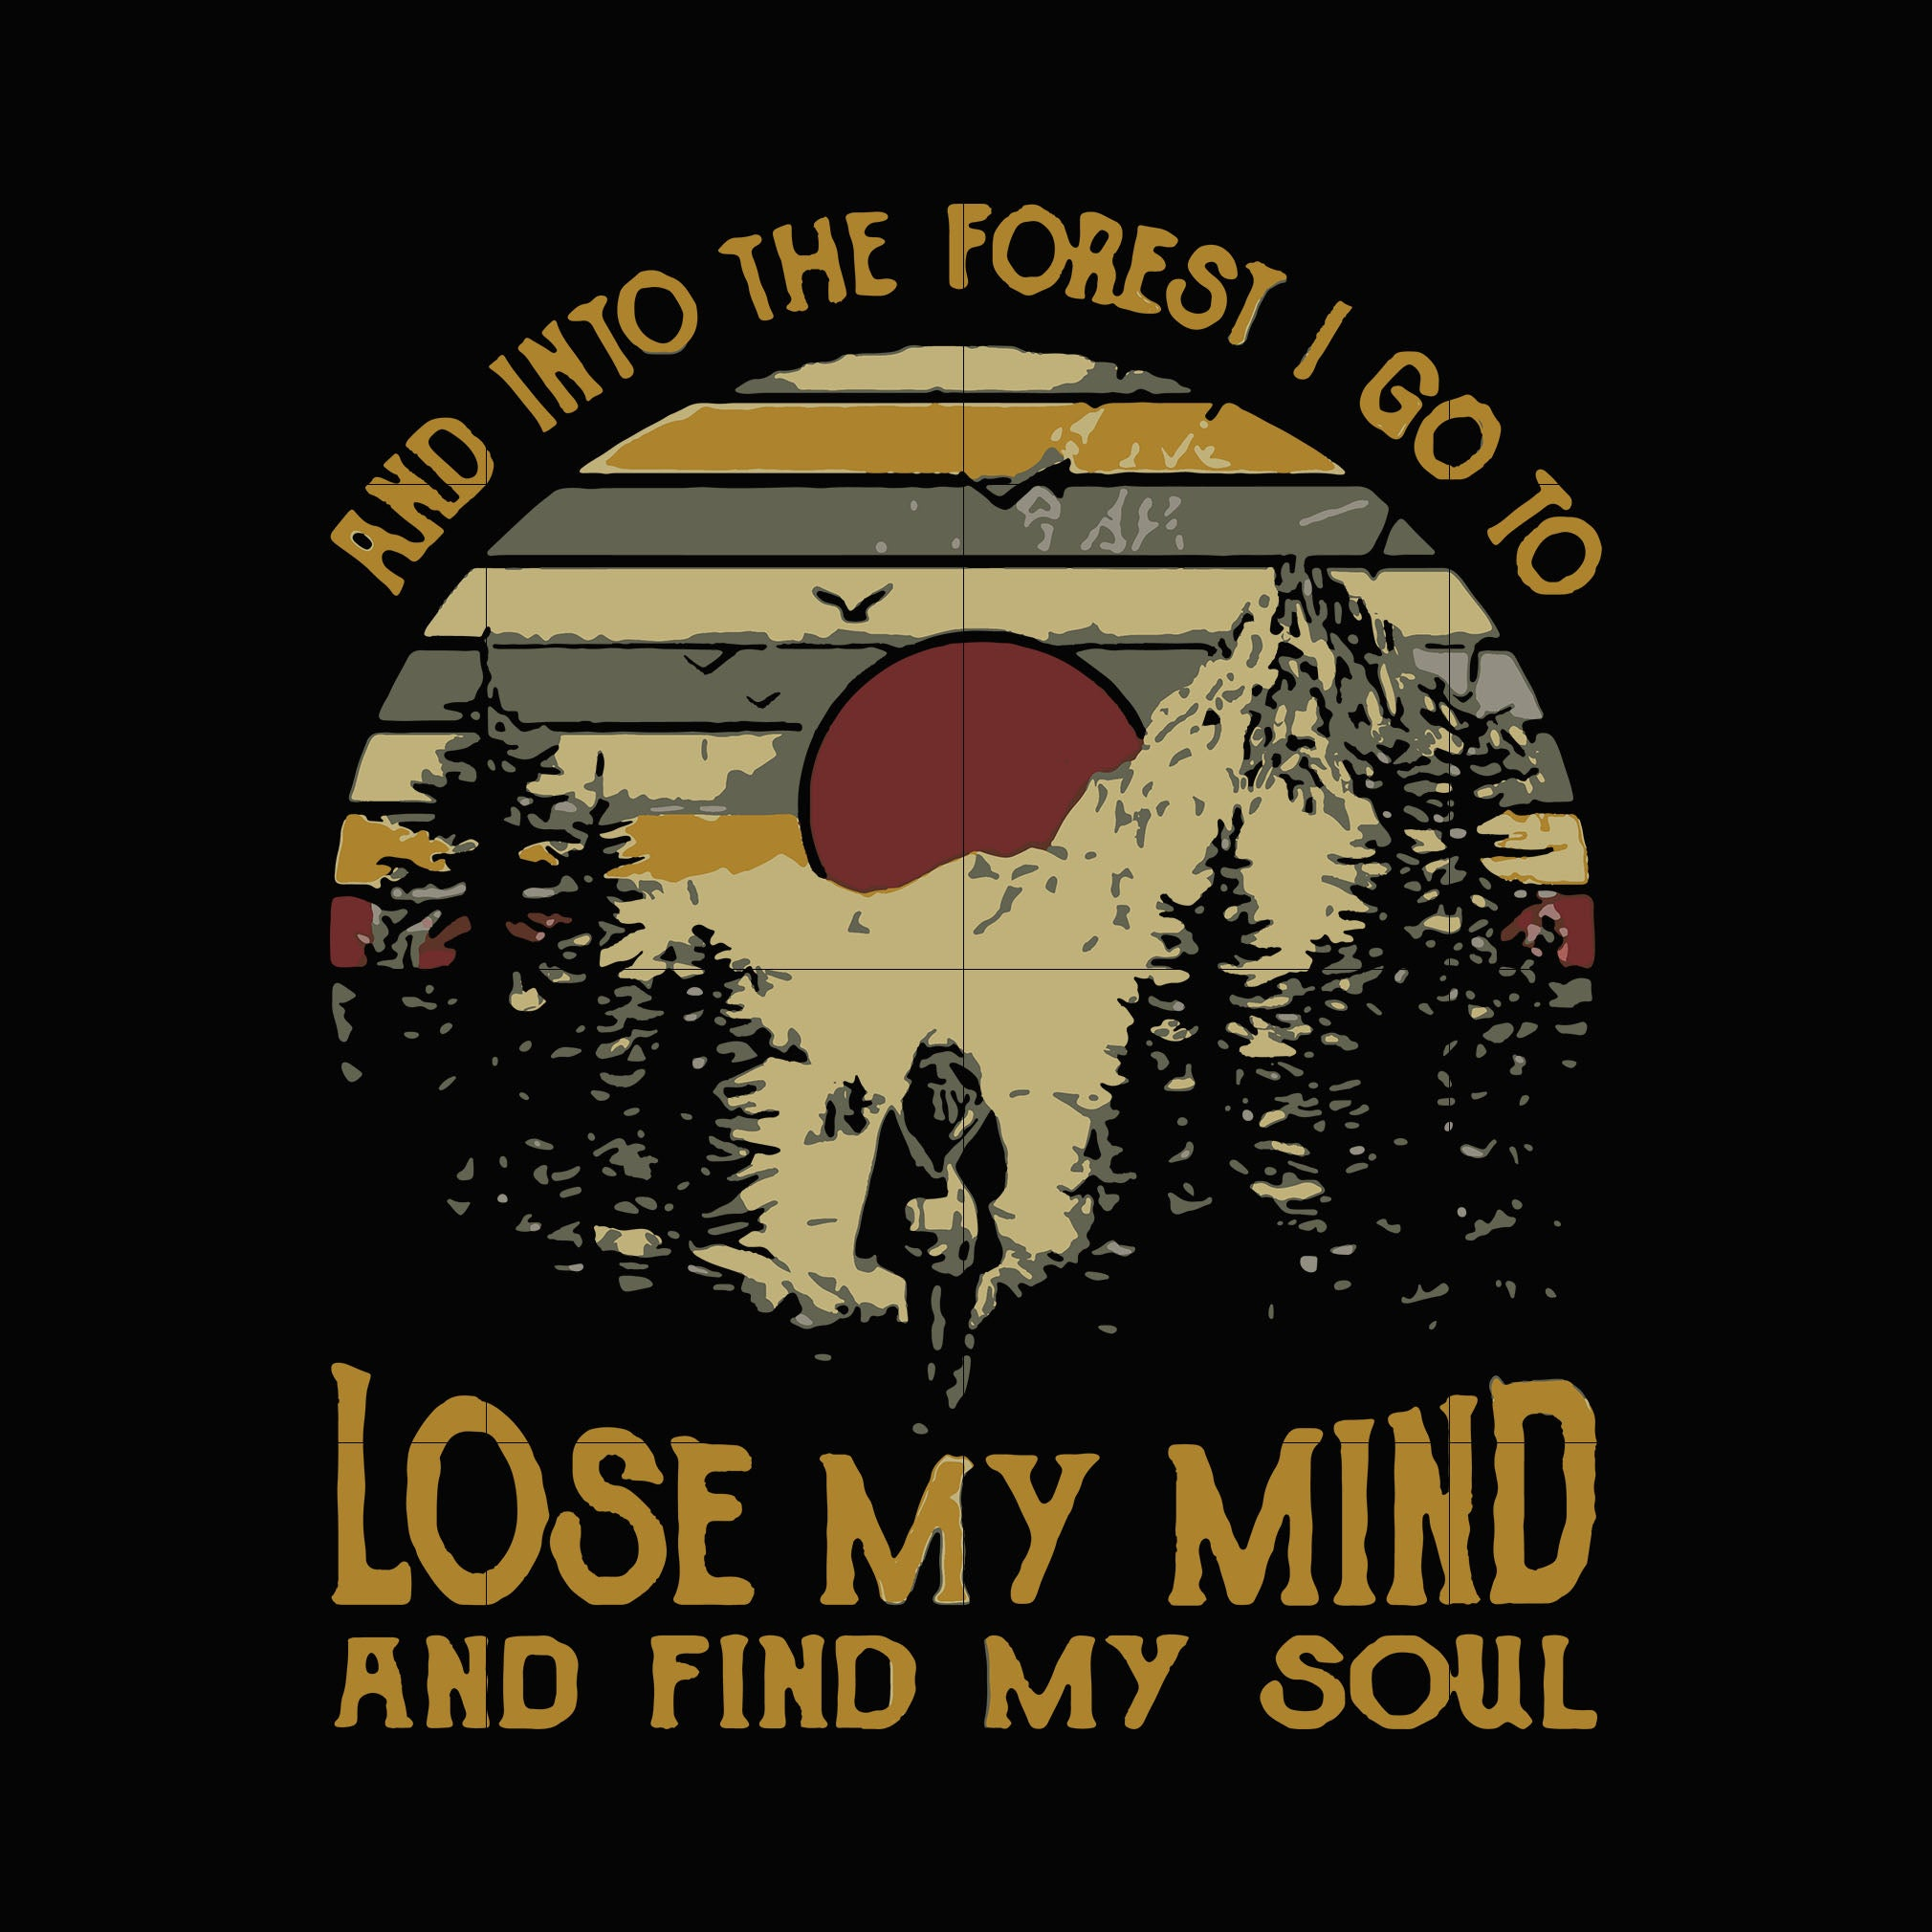 I go into the forest lose my mind and find my soul svg svg png dxf eps digital file